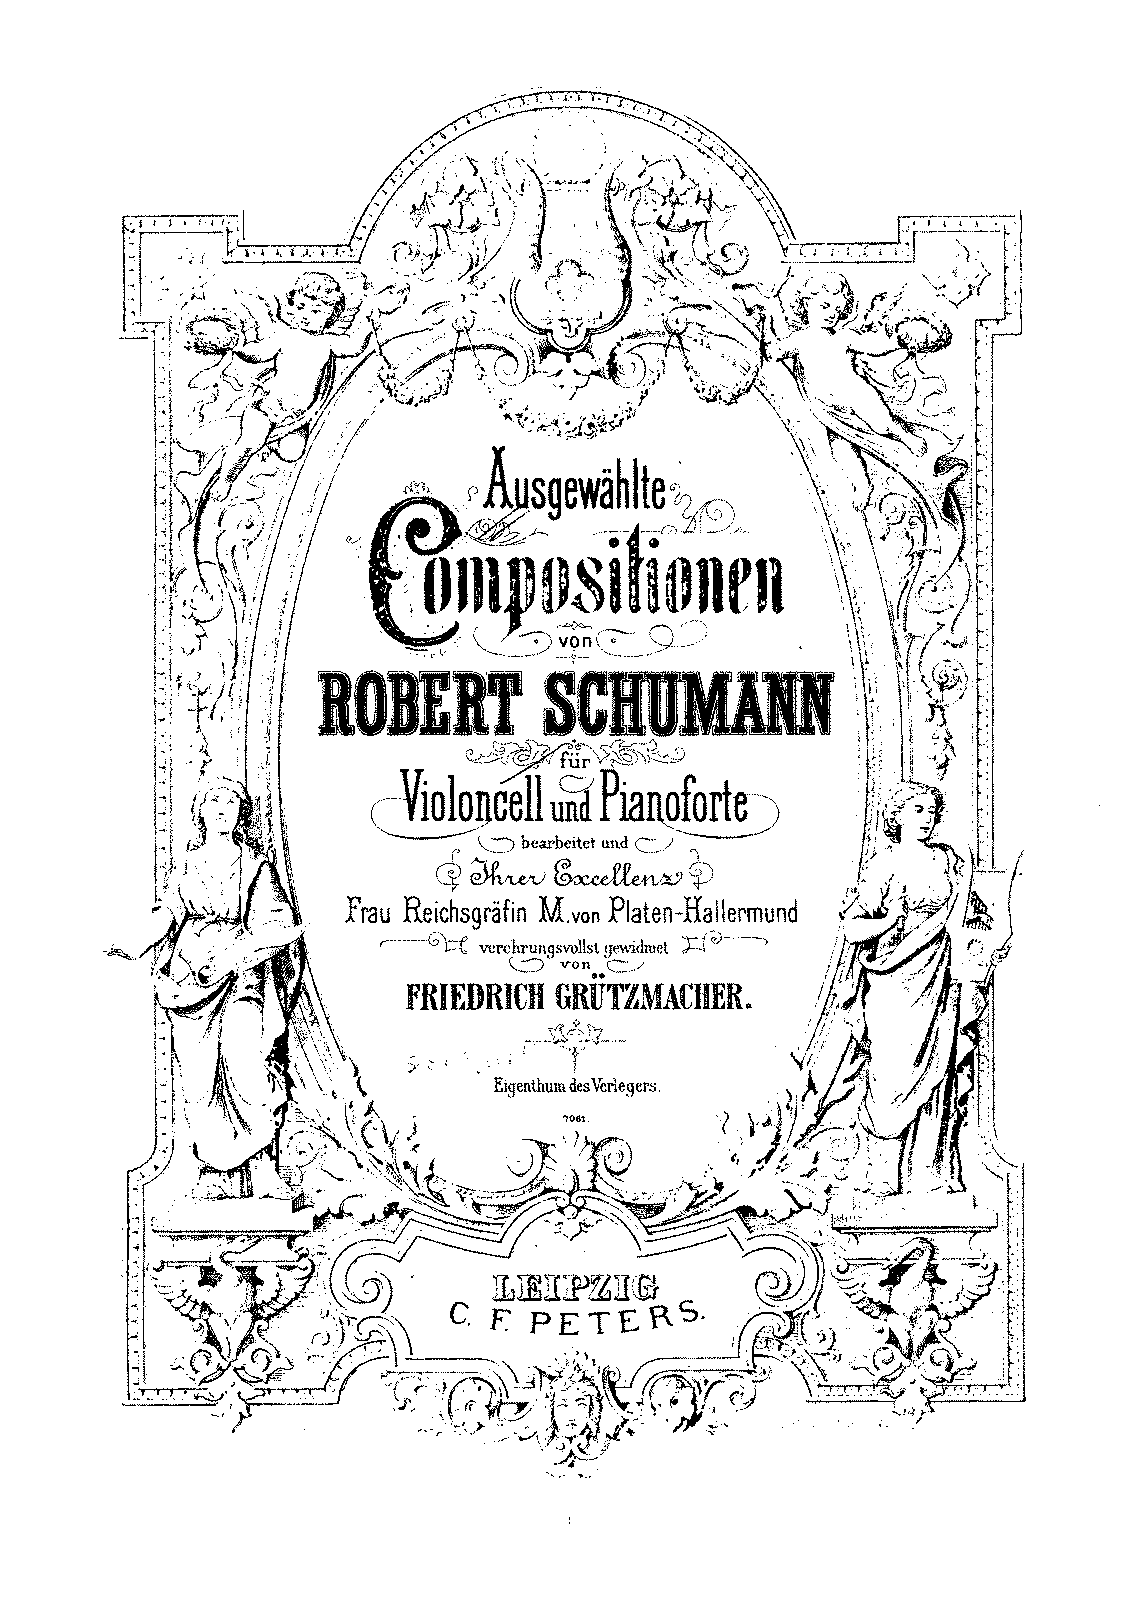 PMLP02697-Schumann - Romanze Op28 Cello and Piano (Grutzmacher) parts.pdf